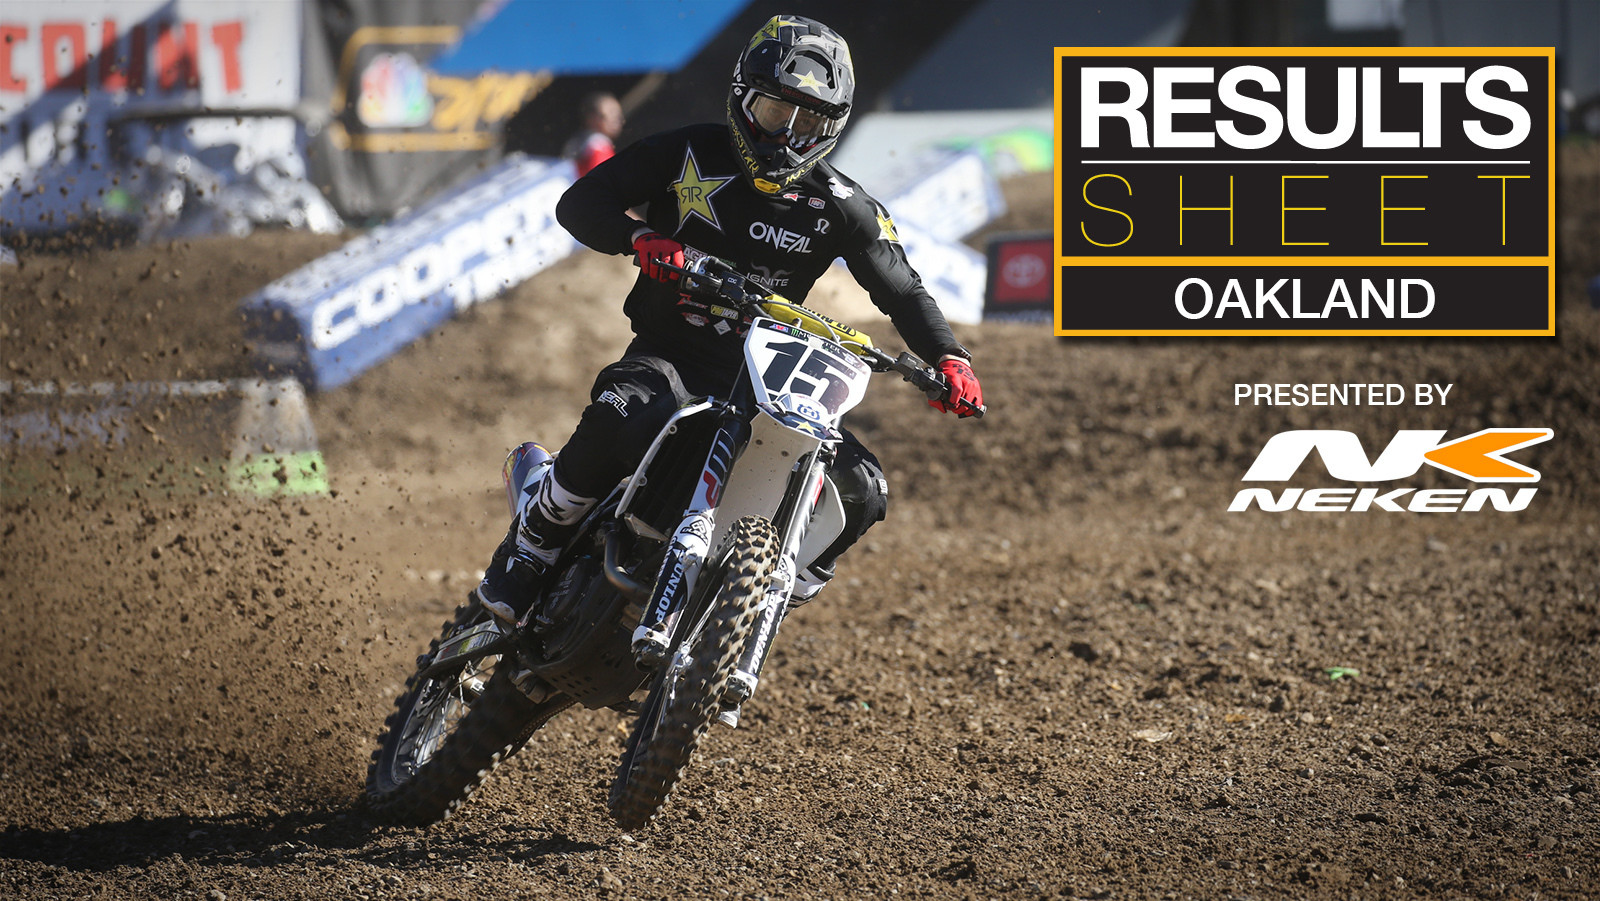 Results Sheet: 2019 Oakland Supercross